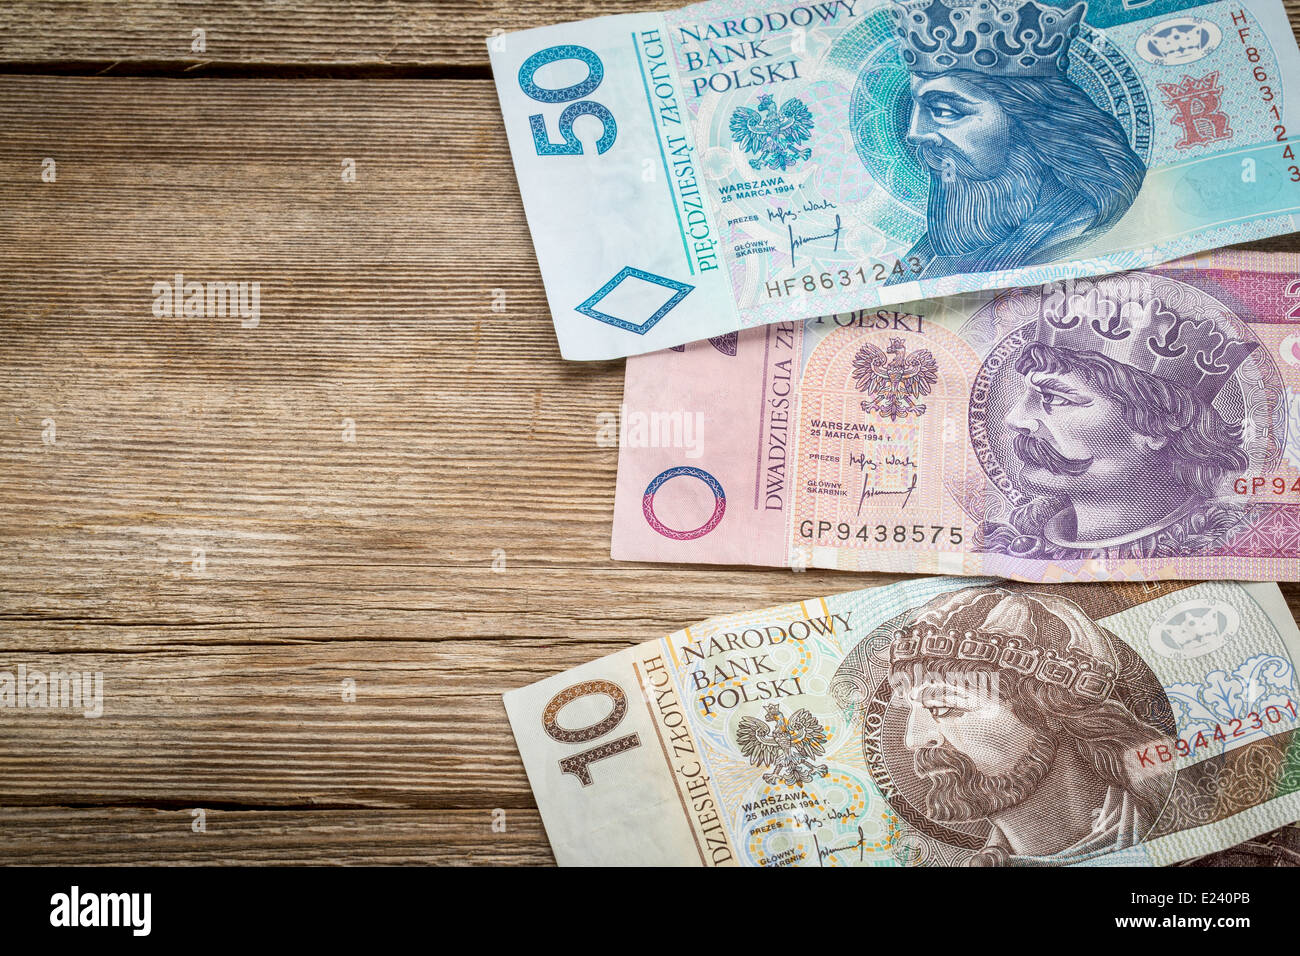 historical kings and rulers of Poland of Piast dynasty on used Polish banknotes (PLN - zloty) - Stock Image